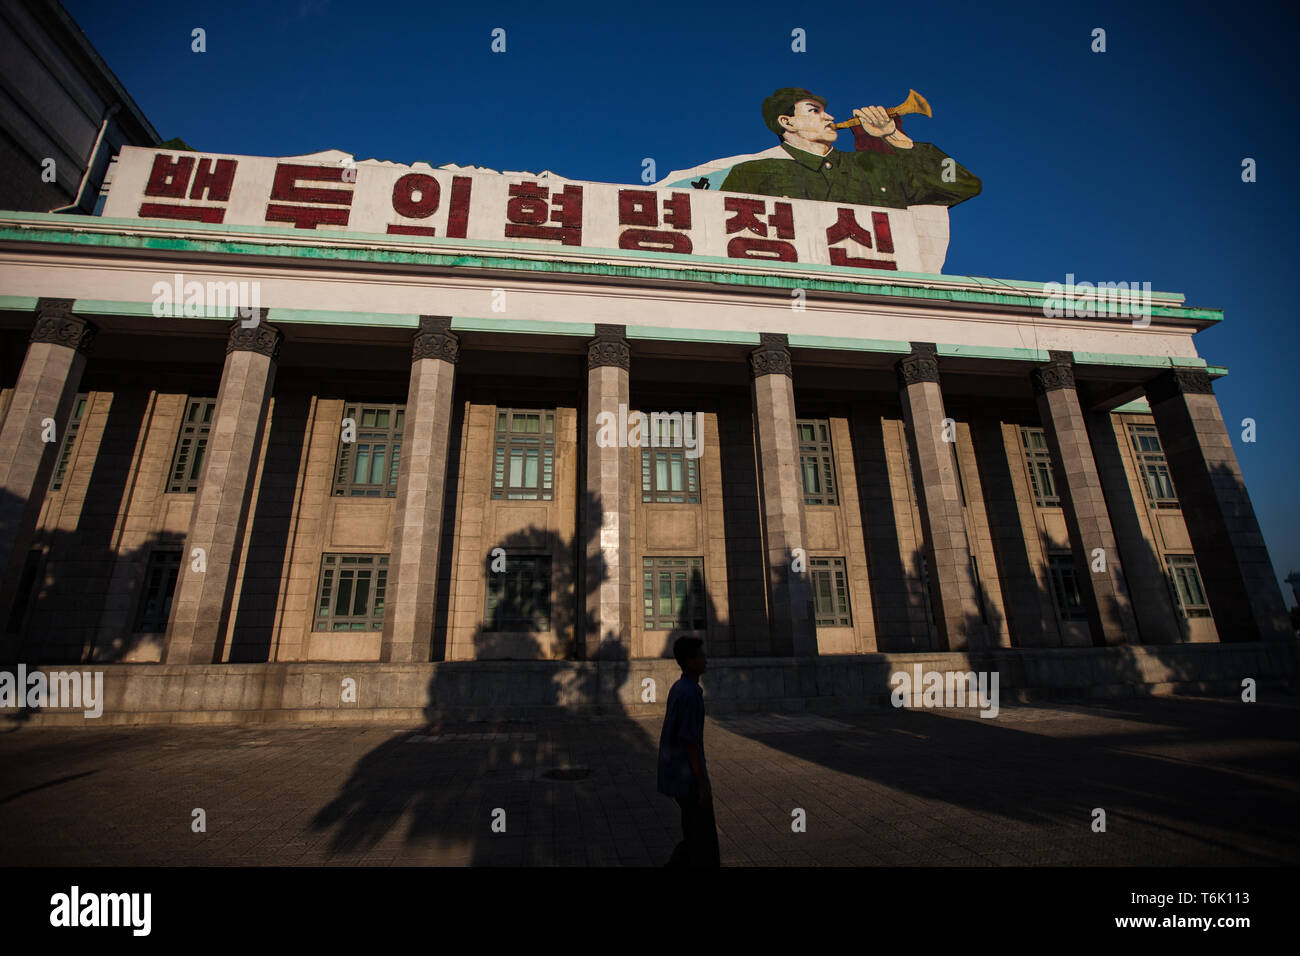 A building on the corner of Kim Il Sung Square in Pyongyang has a large image of a bugler with messages on the roof. Stock Photo